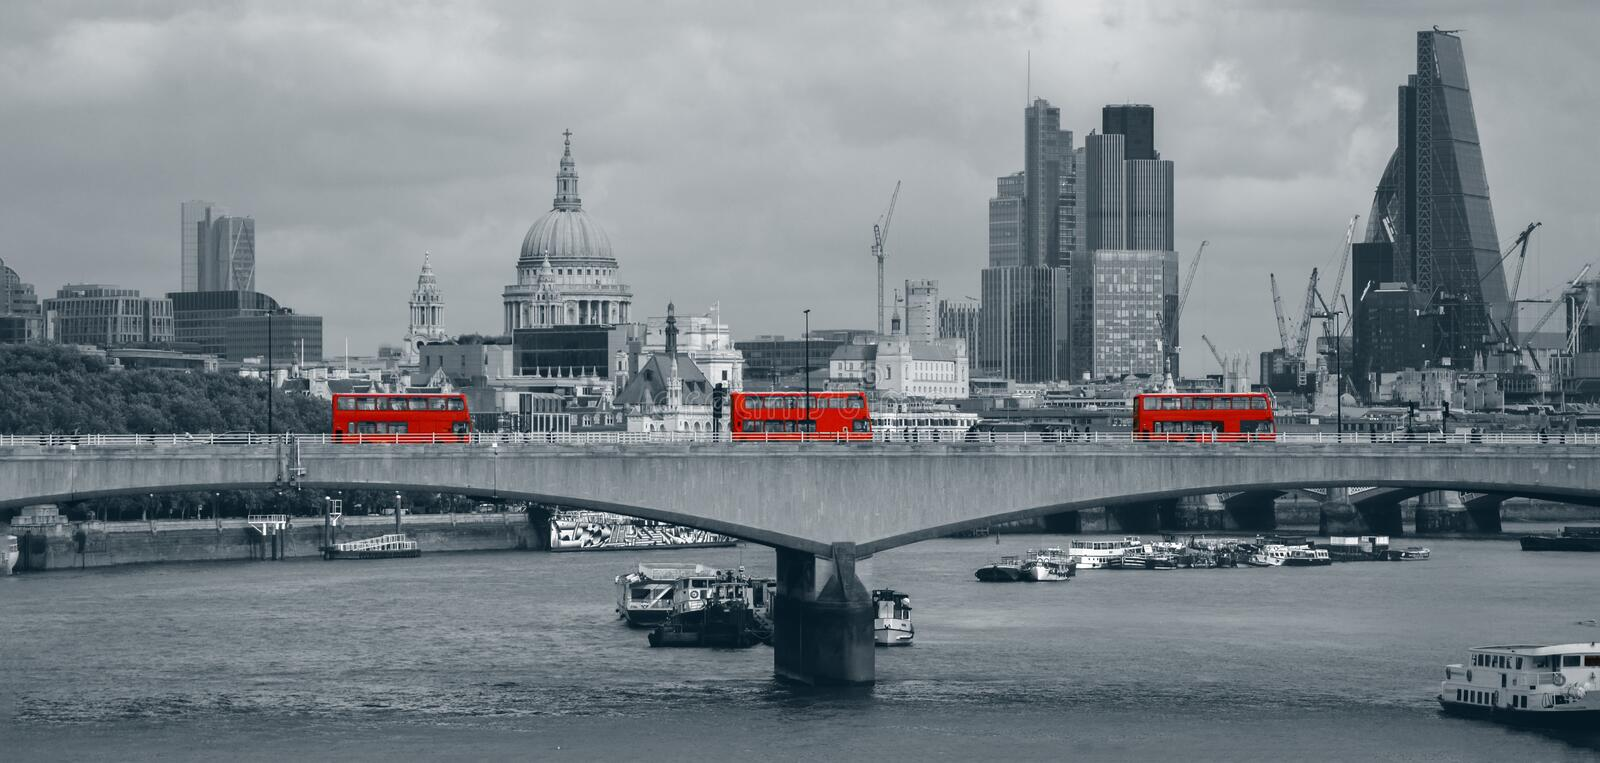 London skyline with red buses. This picture was taken looking across a bridge in London overlooking the Thames River. By pure chance three buses passed over at